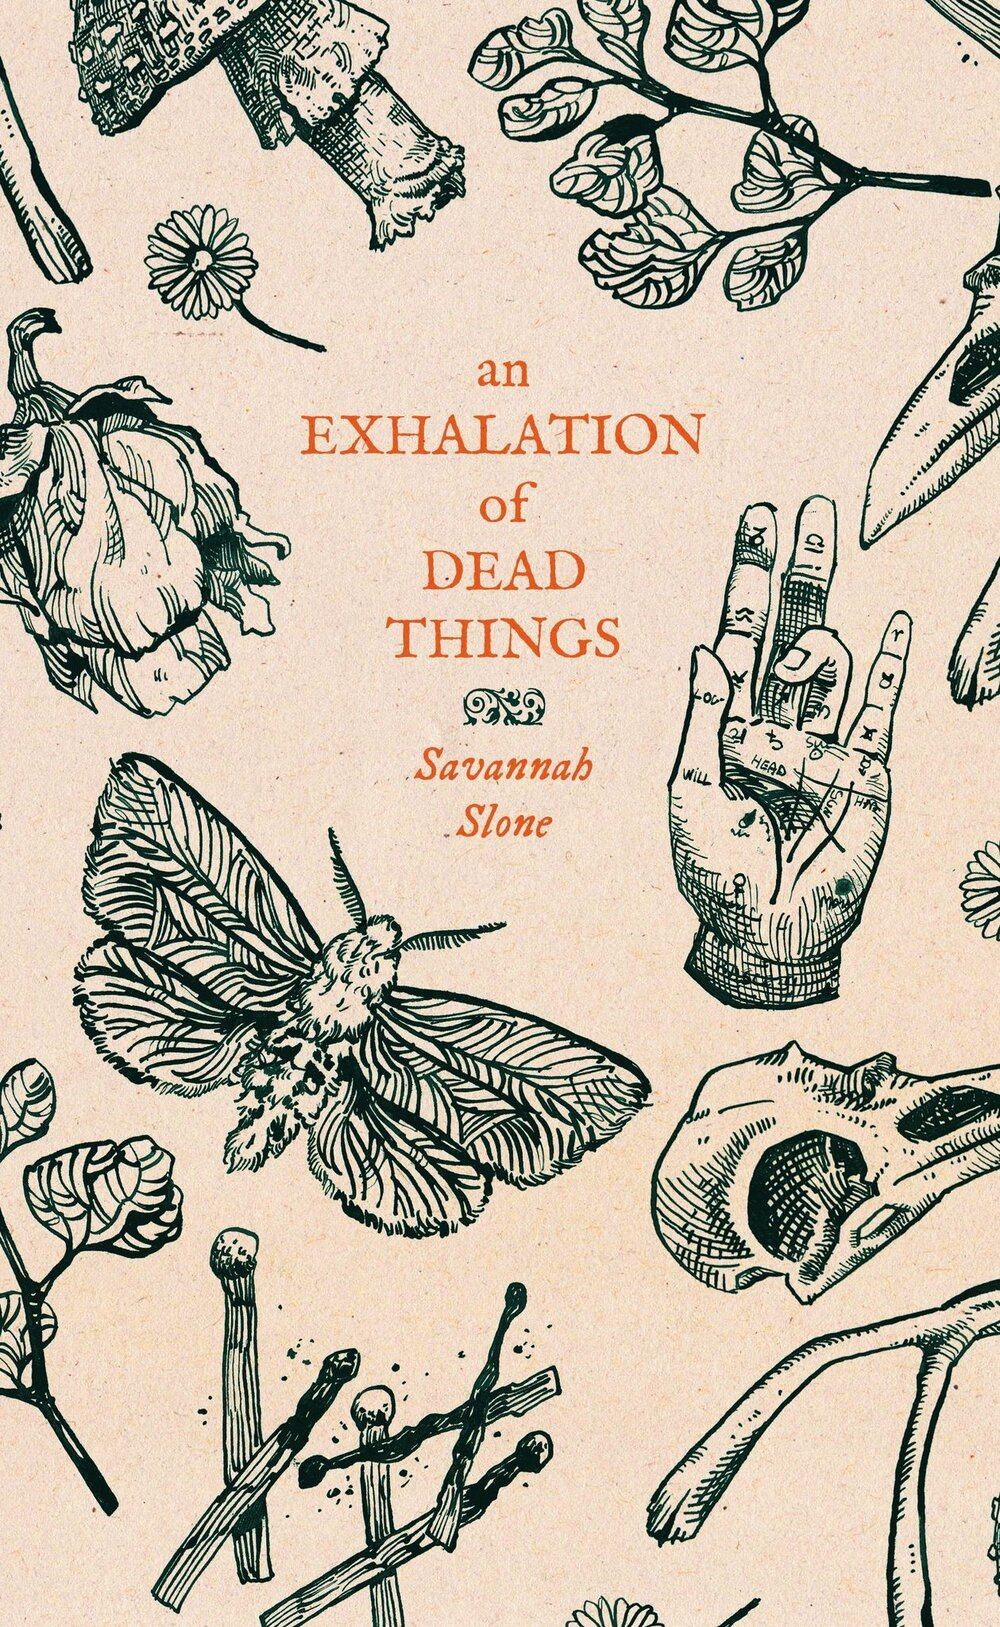 An Exhalation of Dead Things